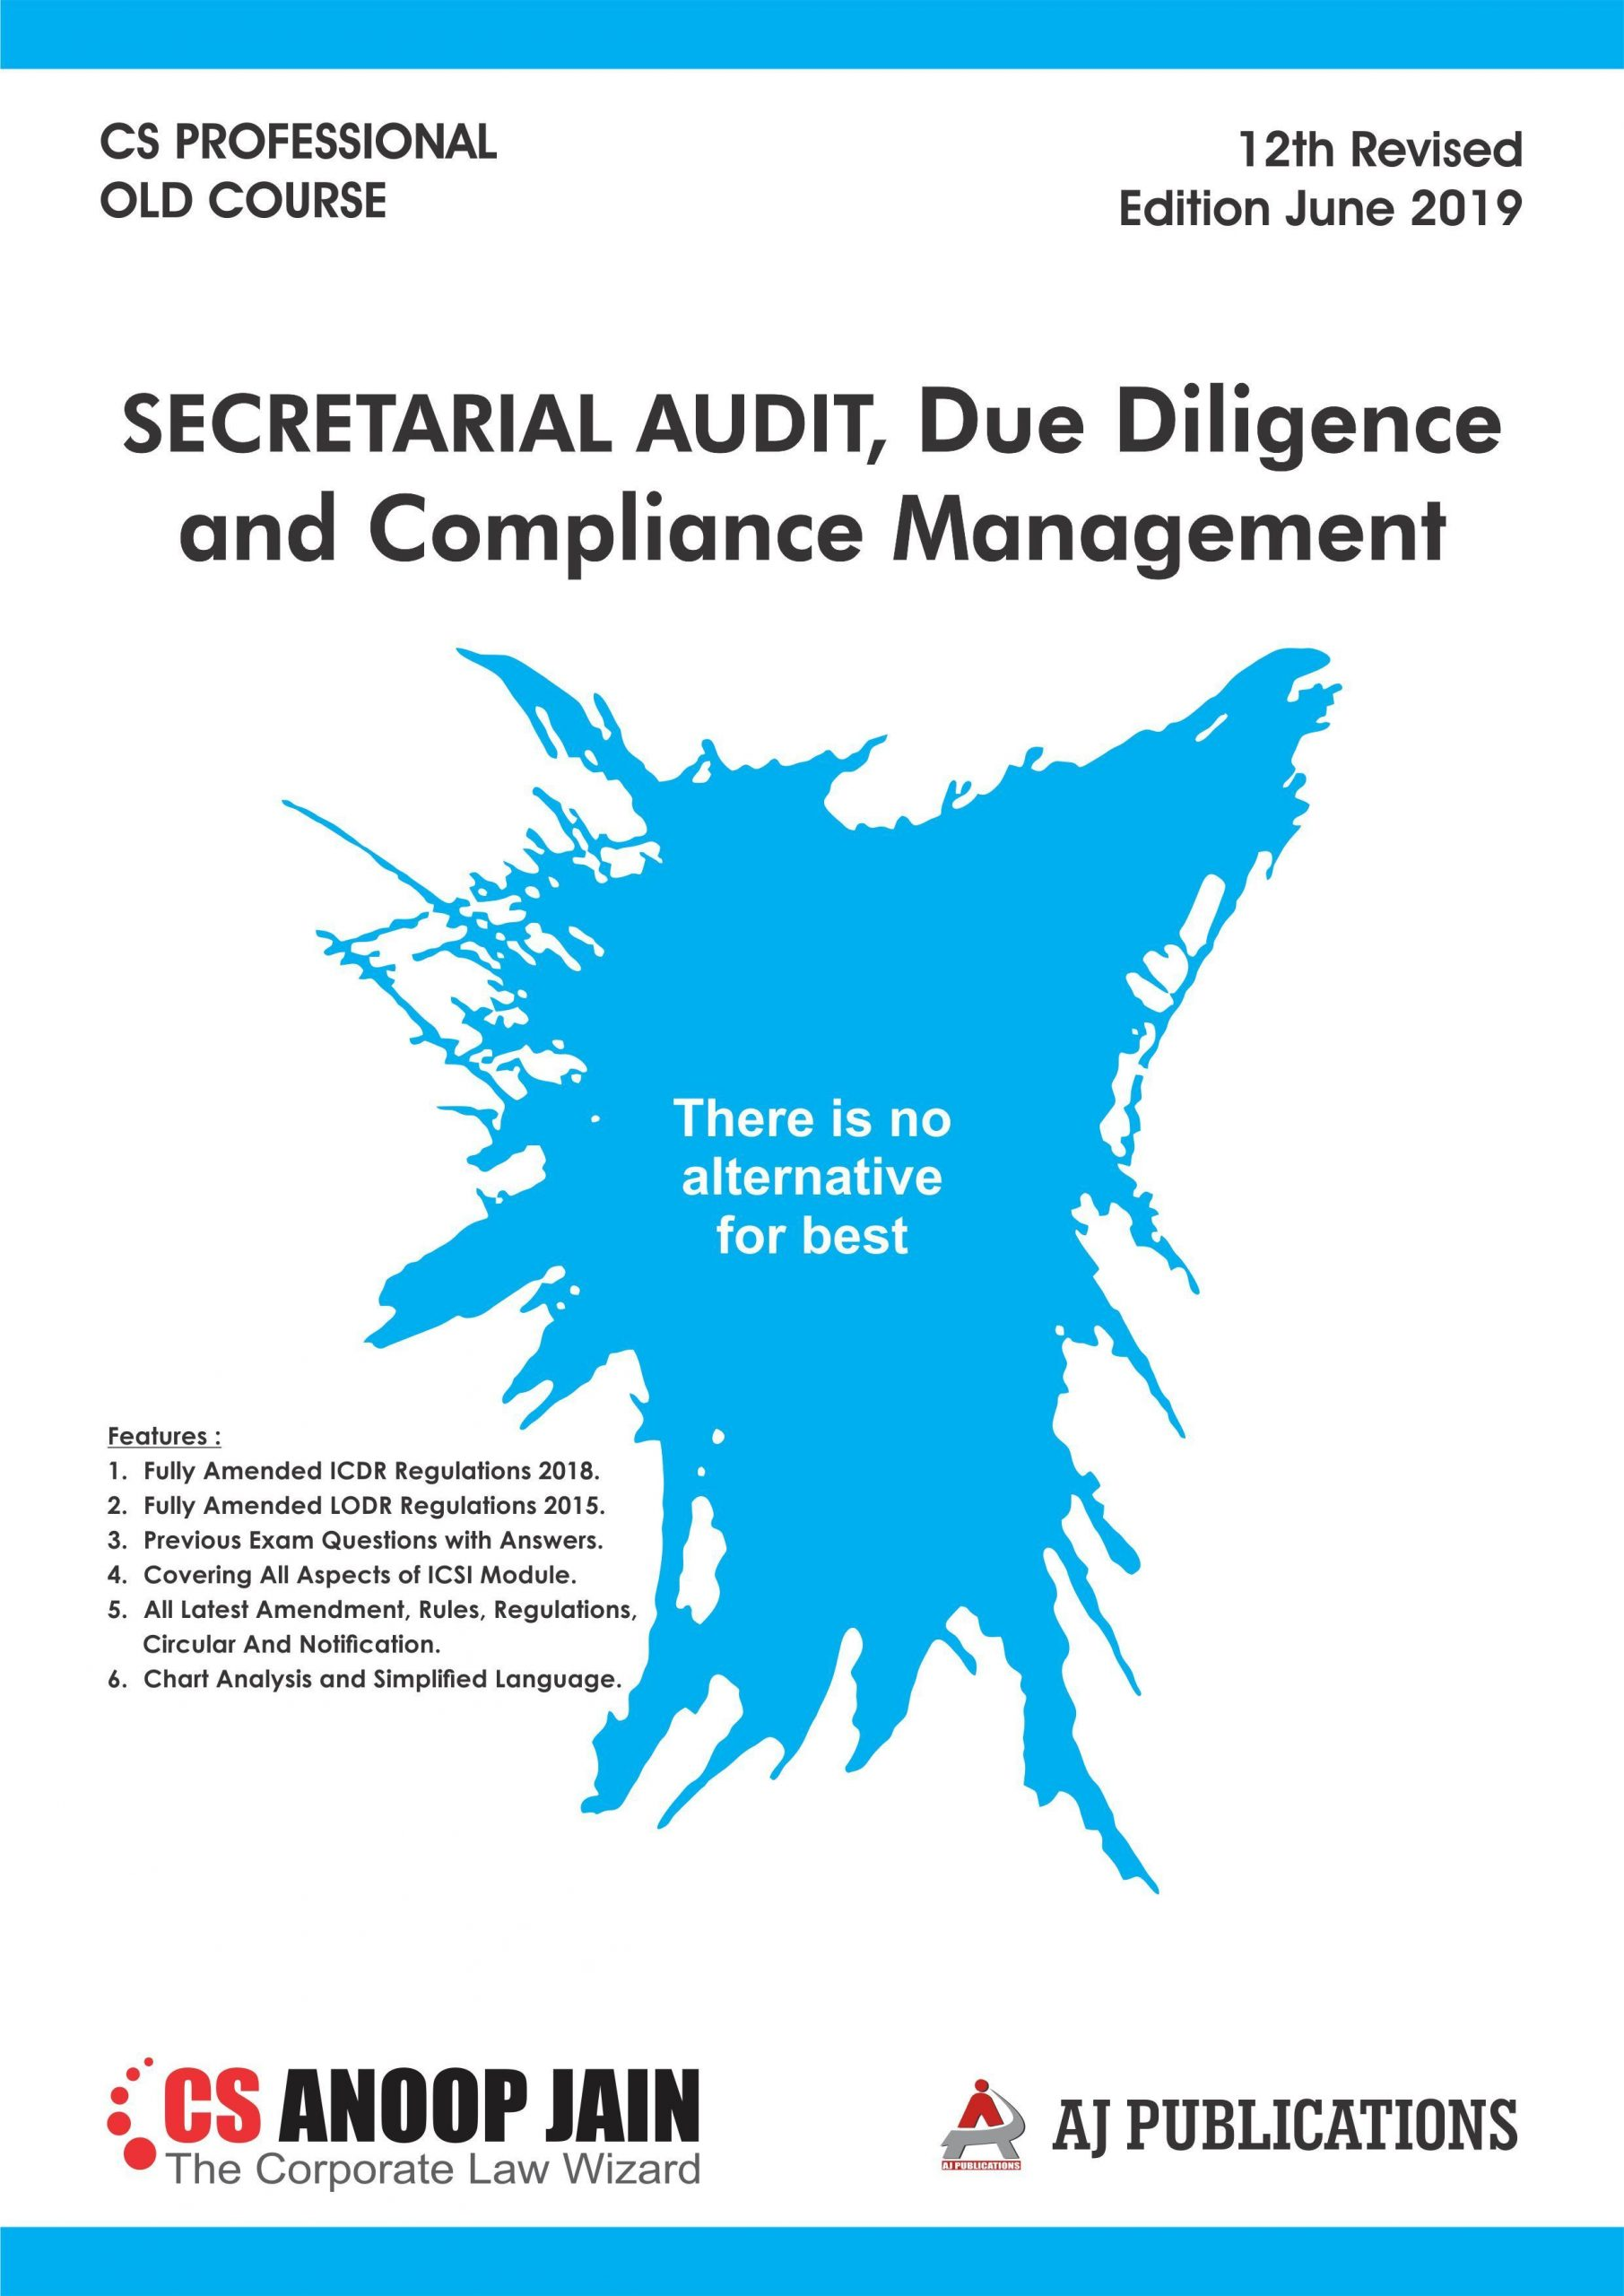 AJ Publication Secretarial Audit, Compliance Management And Due Diligence old syllabus for CS Professional by CS Anoop Jain for June 2020 Exam